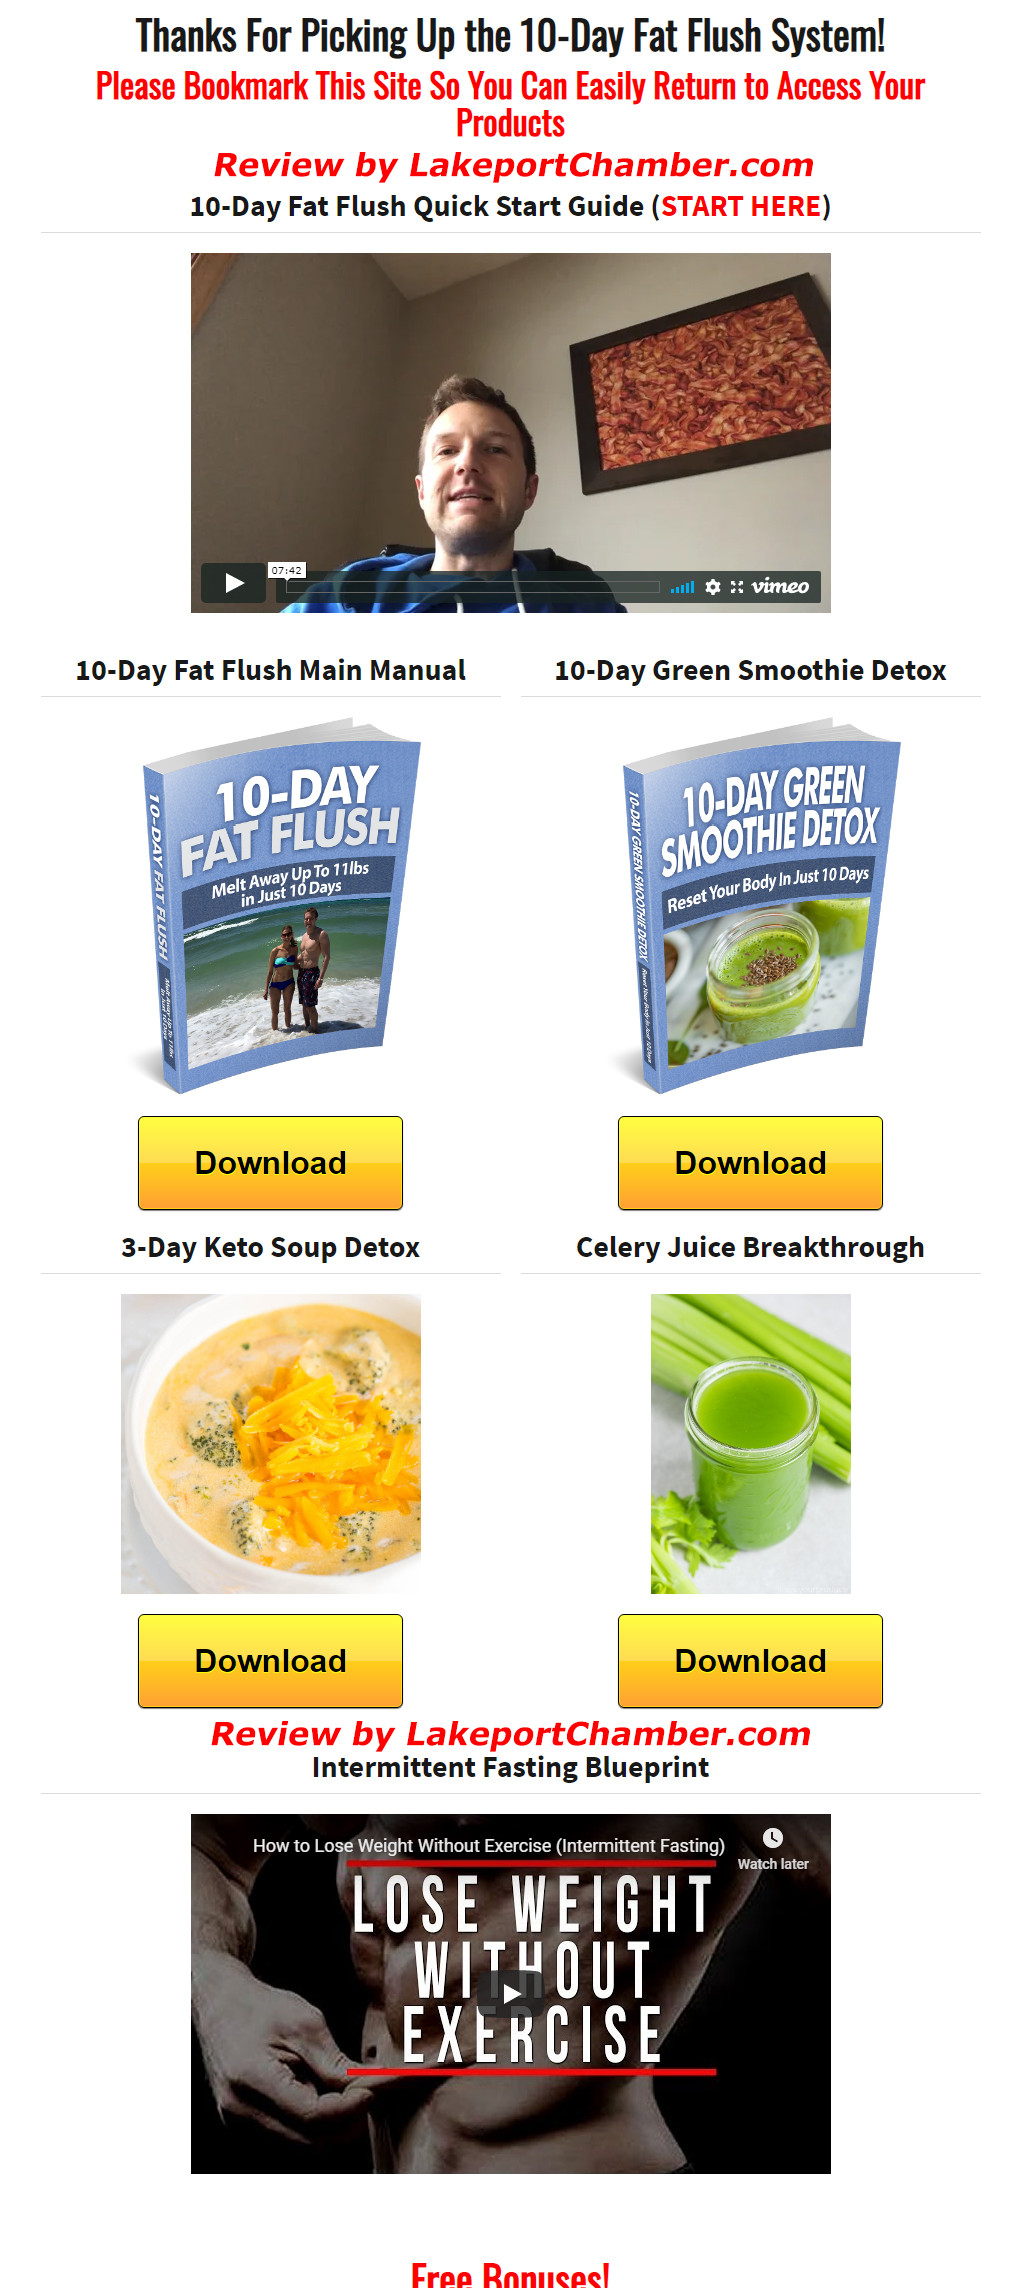 10-Day Fat Flush Download Page